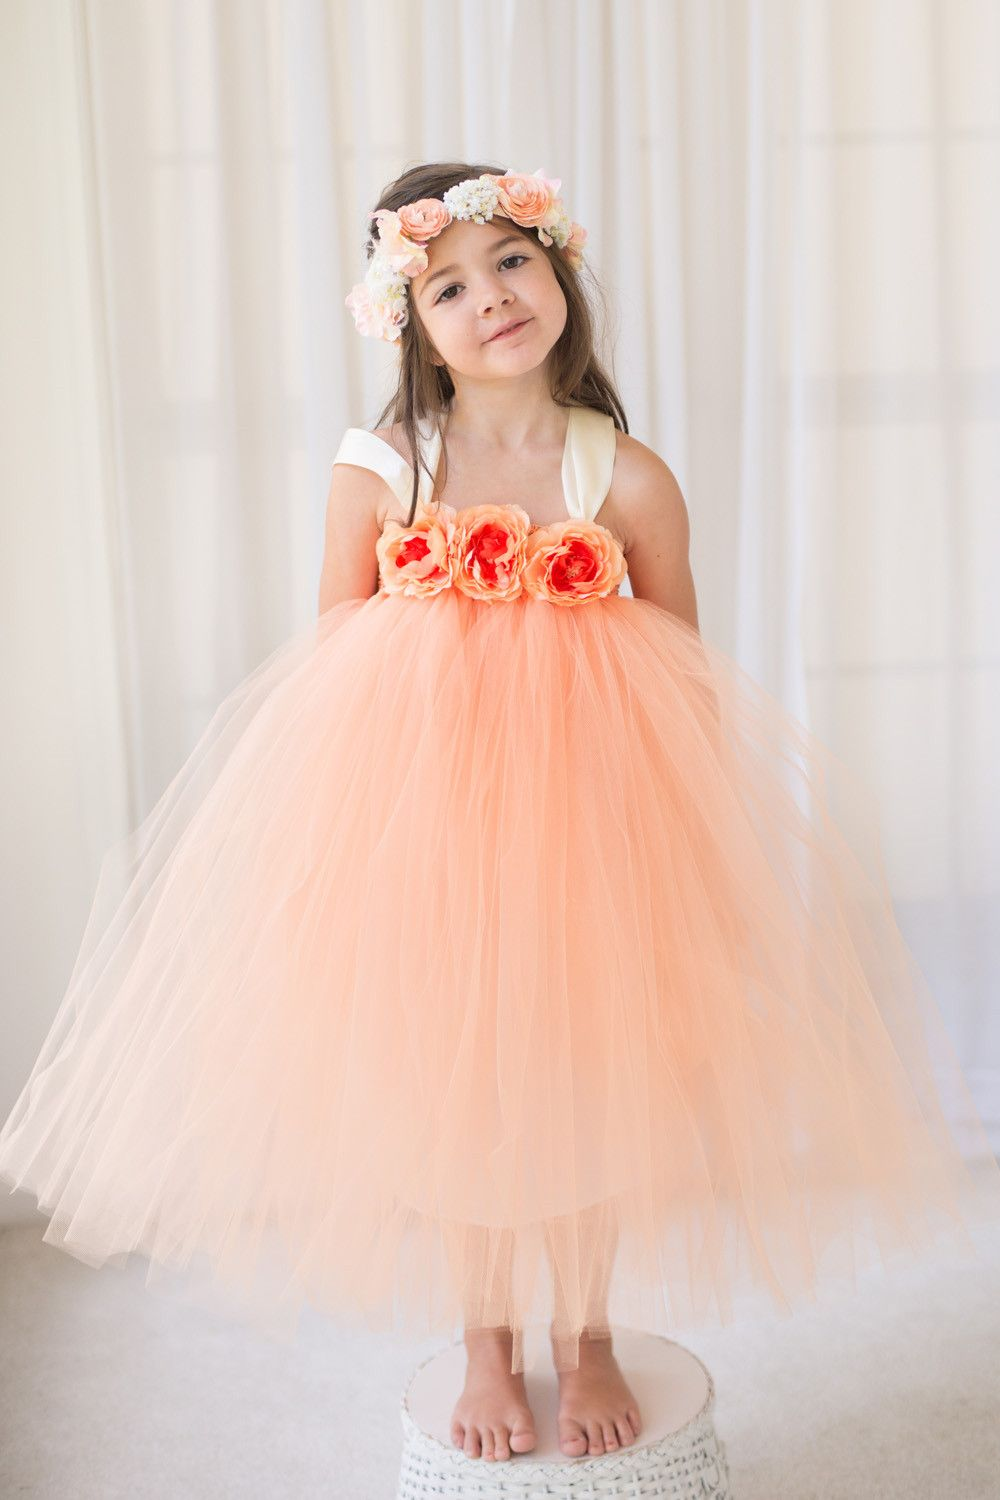 Strap Dusty Orange Pixie Tutu Dresses Cheap Popular Flower Girl